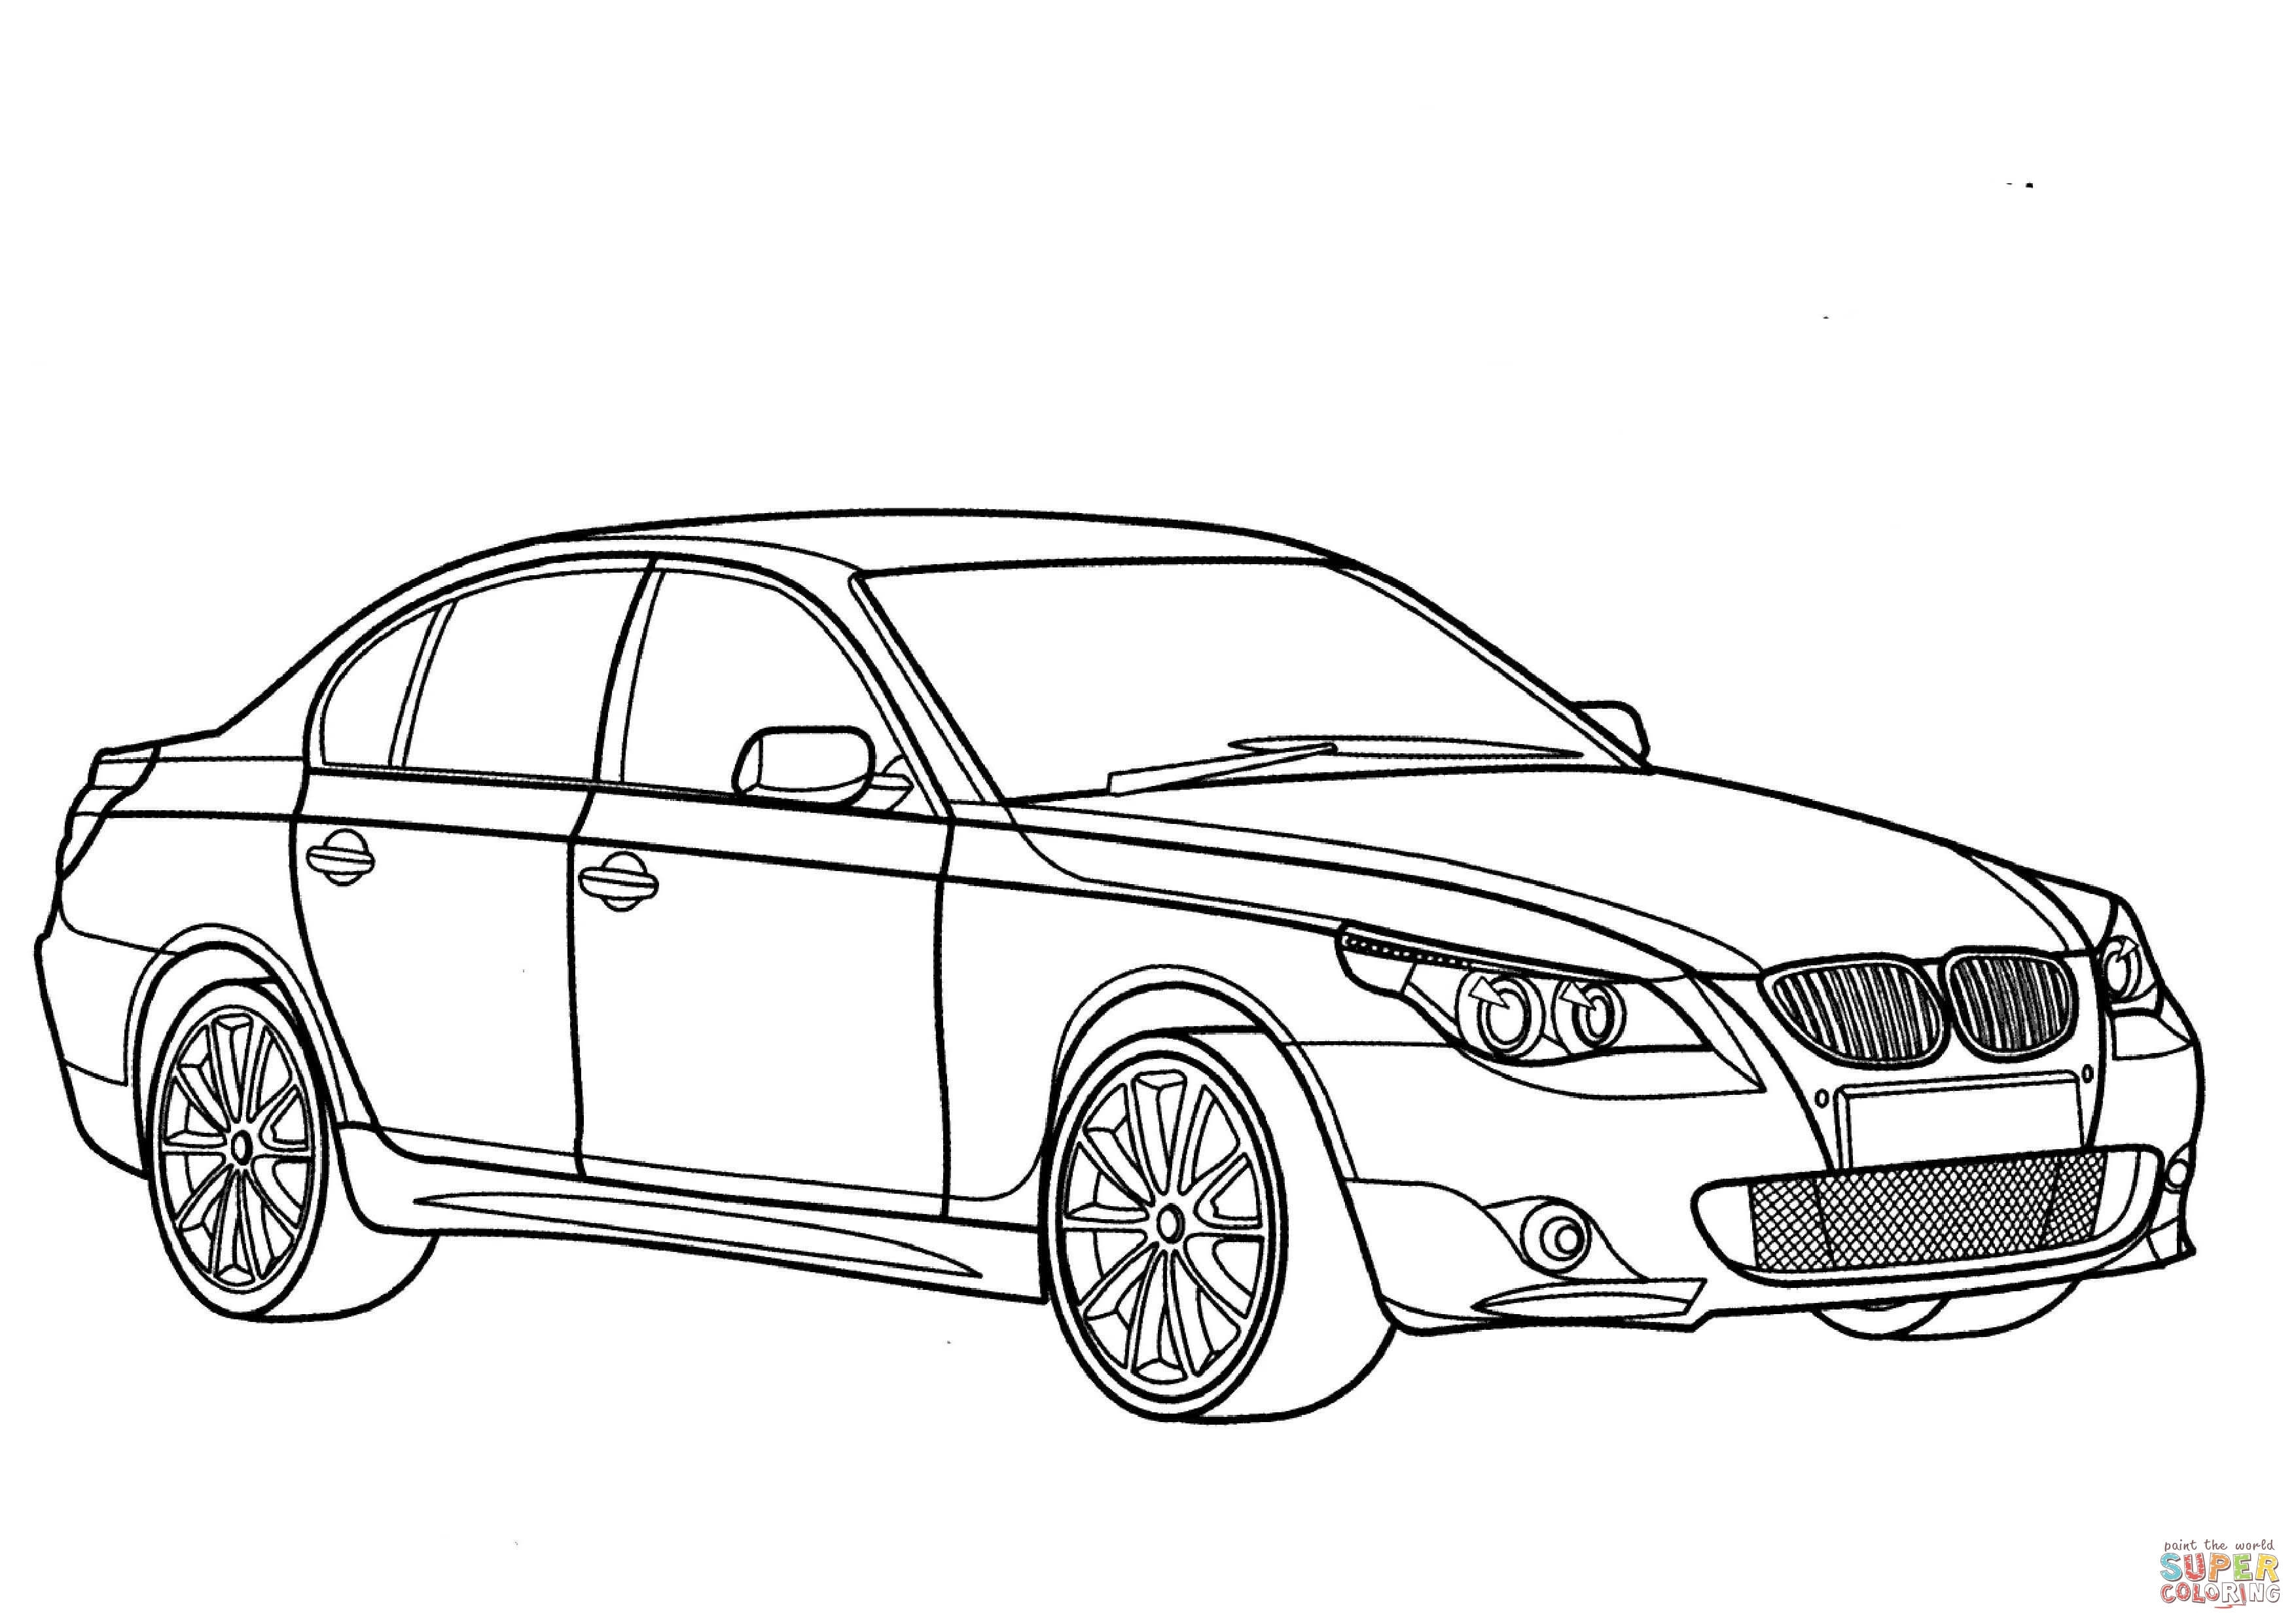 New Bmw Series 3 Coloring Pages Gallery Printable Of Car Perspective Page